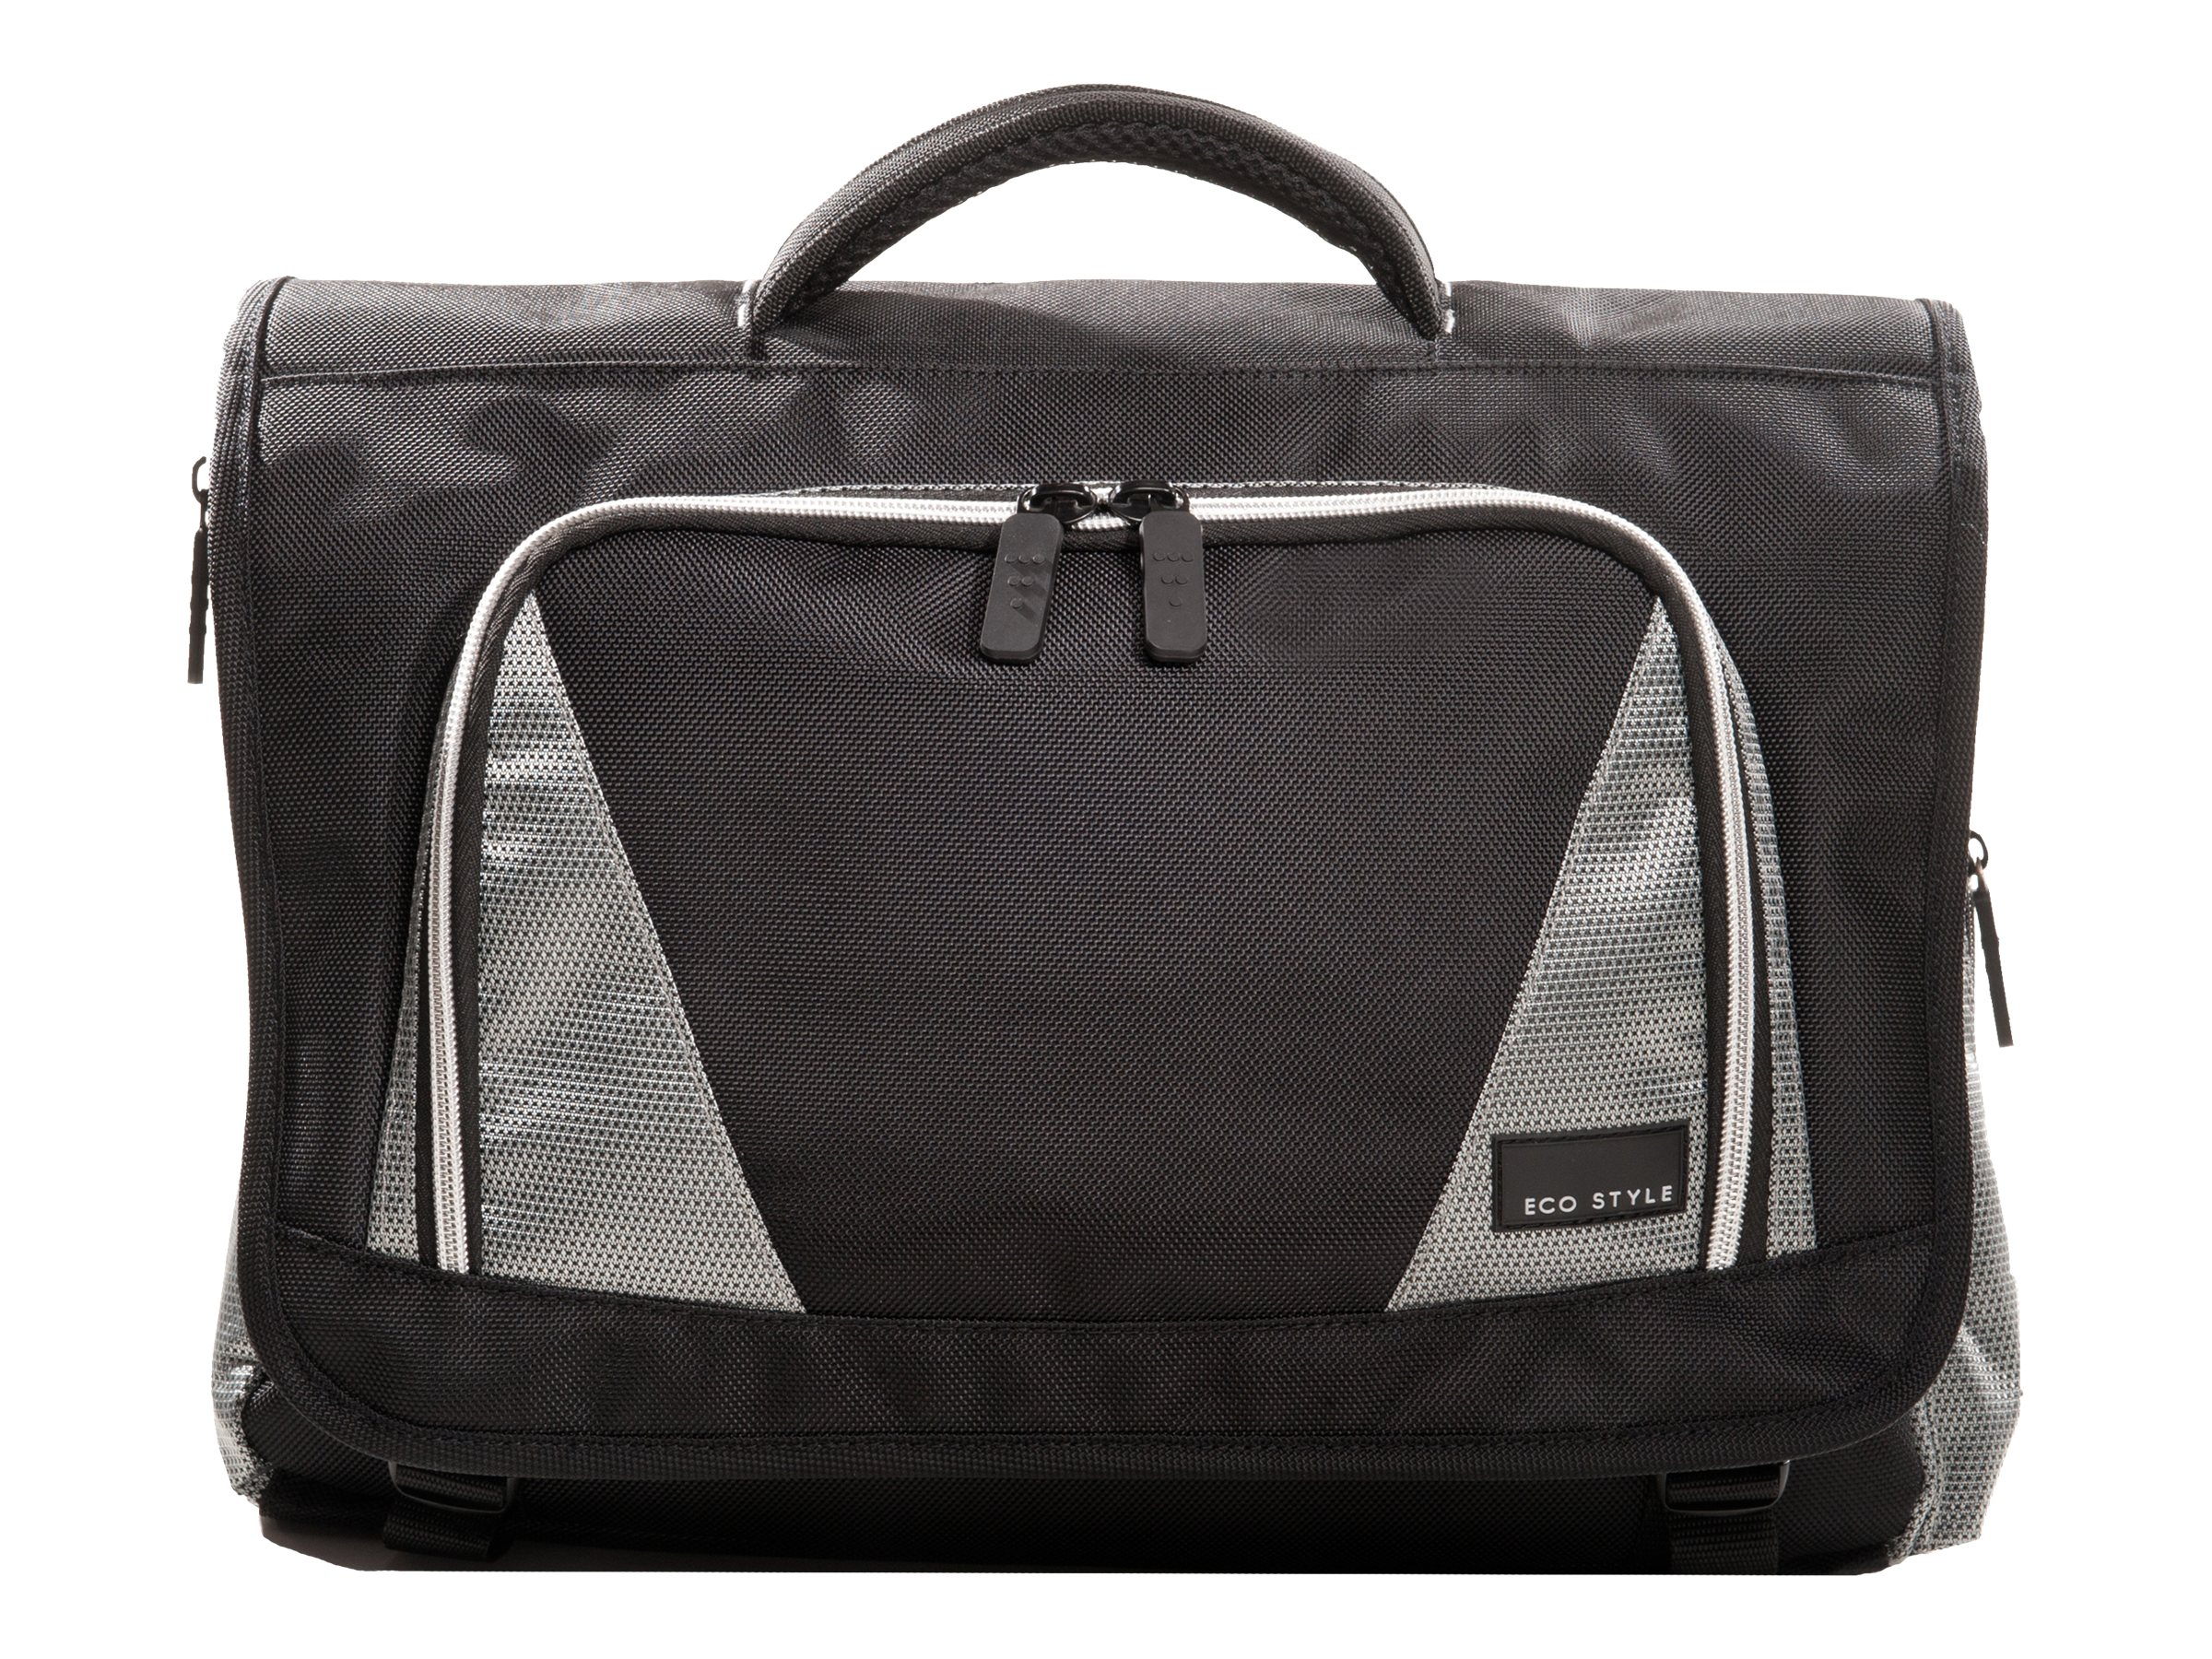 Eco Style Sports Voyage Messenger Case, Fits 16.4 Notebook, Black Silver, EVOY-MC16, 13932907, Carrying Cases - Notebook